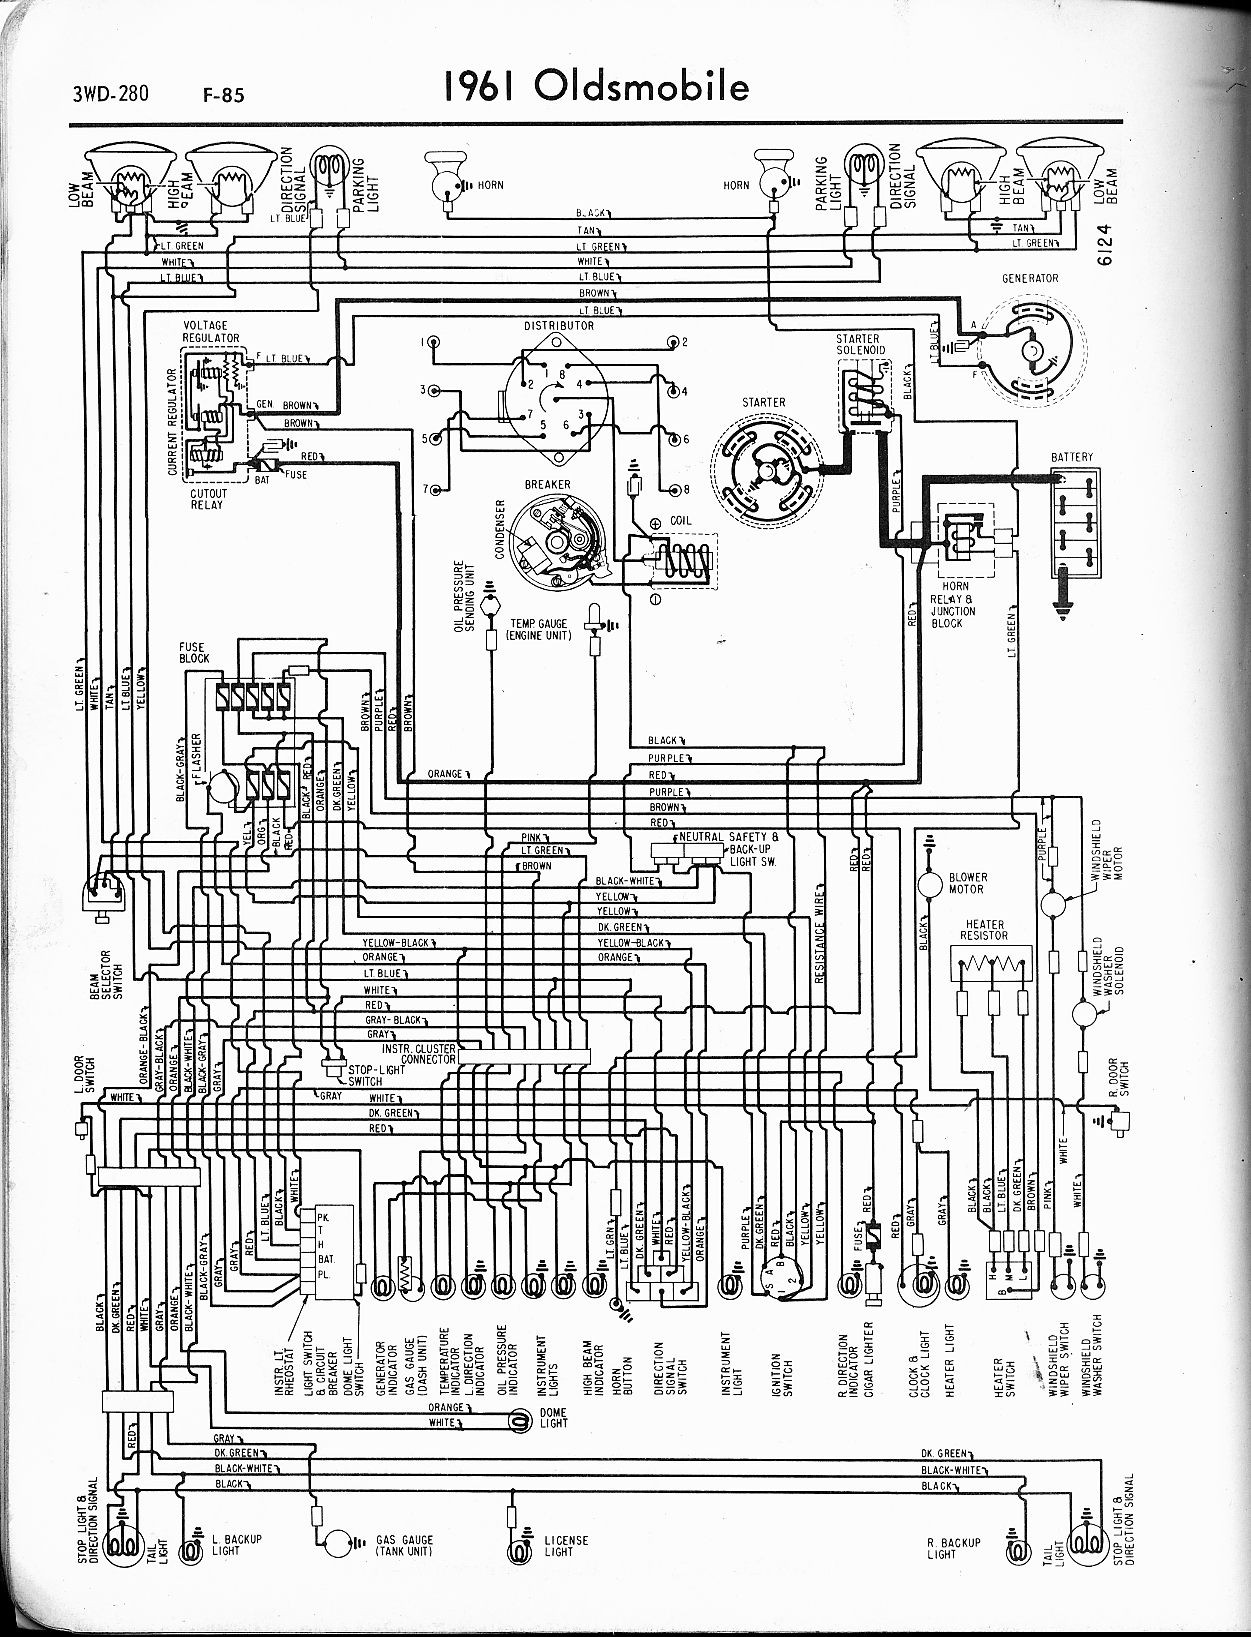 1997 Pontiac Grand Am Engine Diagram 1984 Oldsmobile Cutlass Wiring Diagram 1972 Oldsmobile Cutl Wiring Of 1997 Pontiac Grand Am Engine Diagram